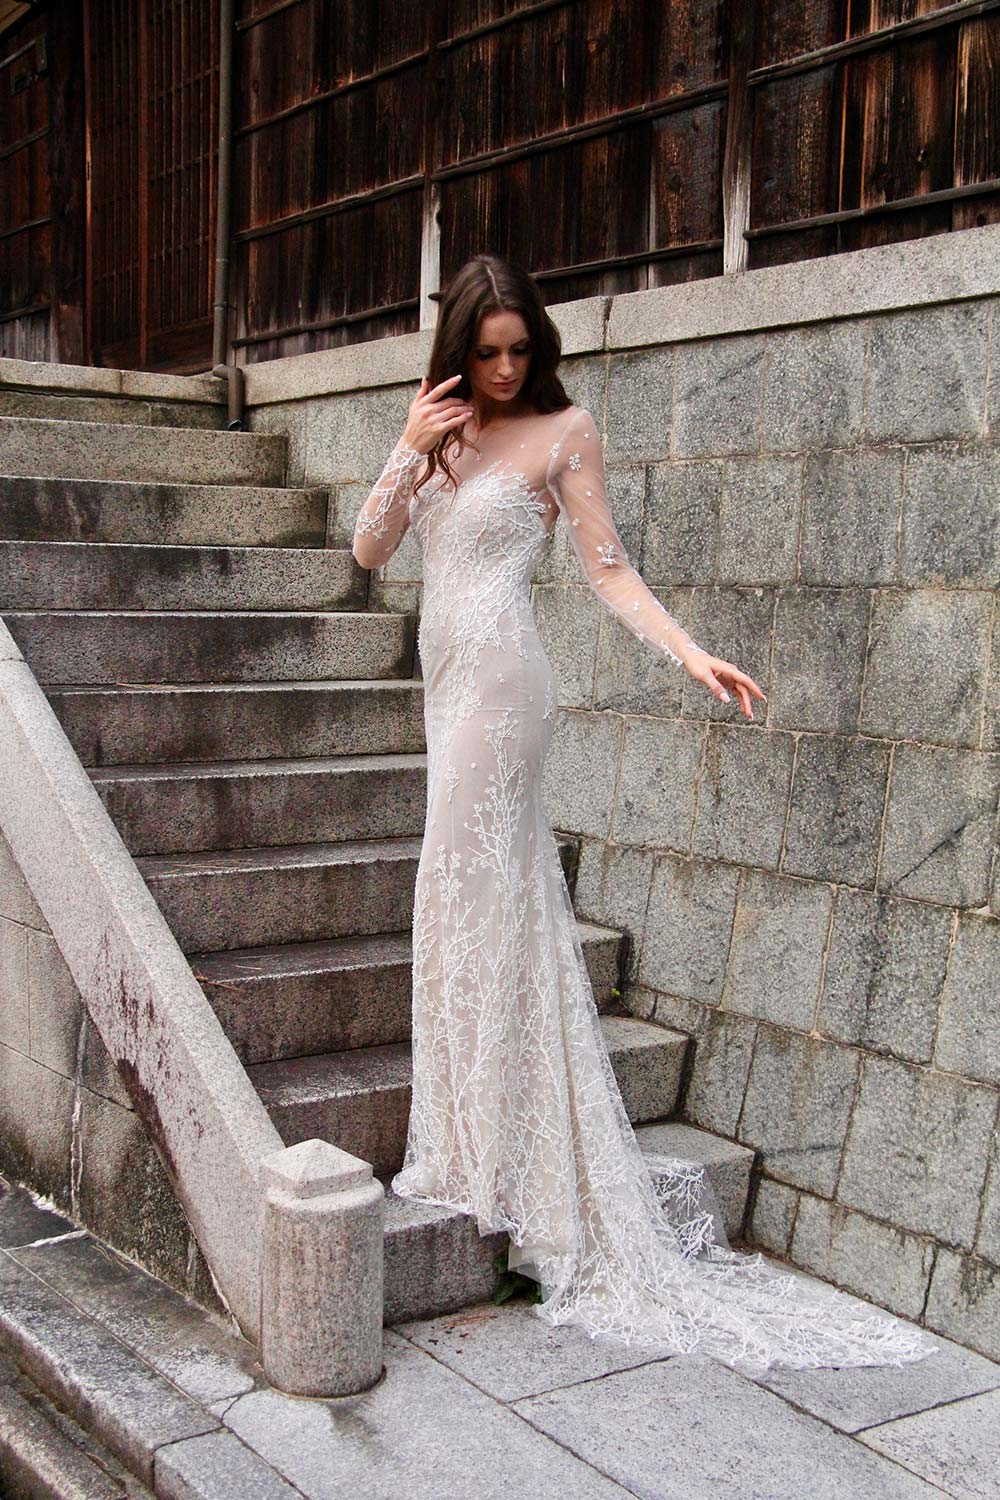 Female model wearing Vinka Design An Oriental Affair Wedding Dress. On the stairs to a japanese temple the side detail of a form-fitting, semi-sheer gown with a high neckline and fully beaded blossom lace gown.